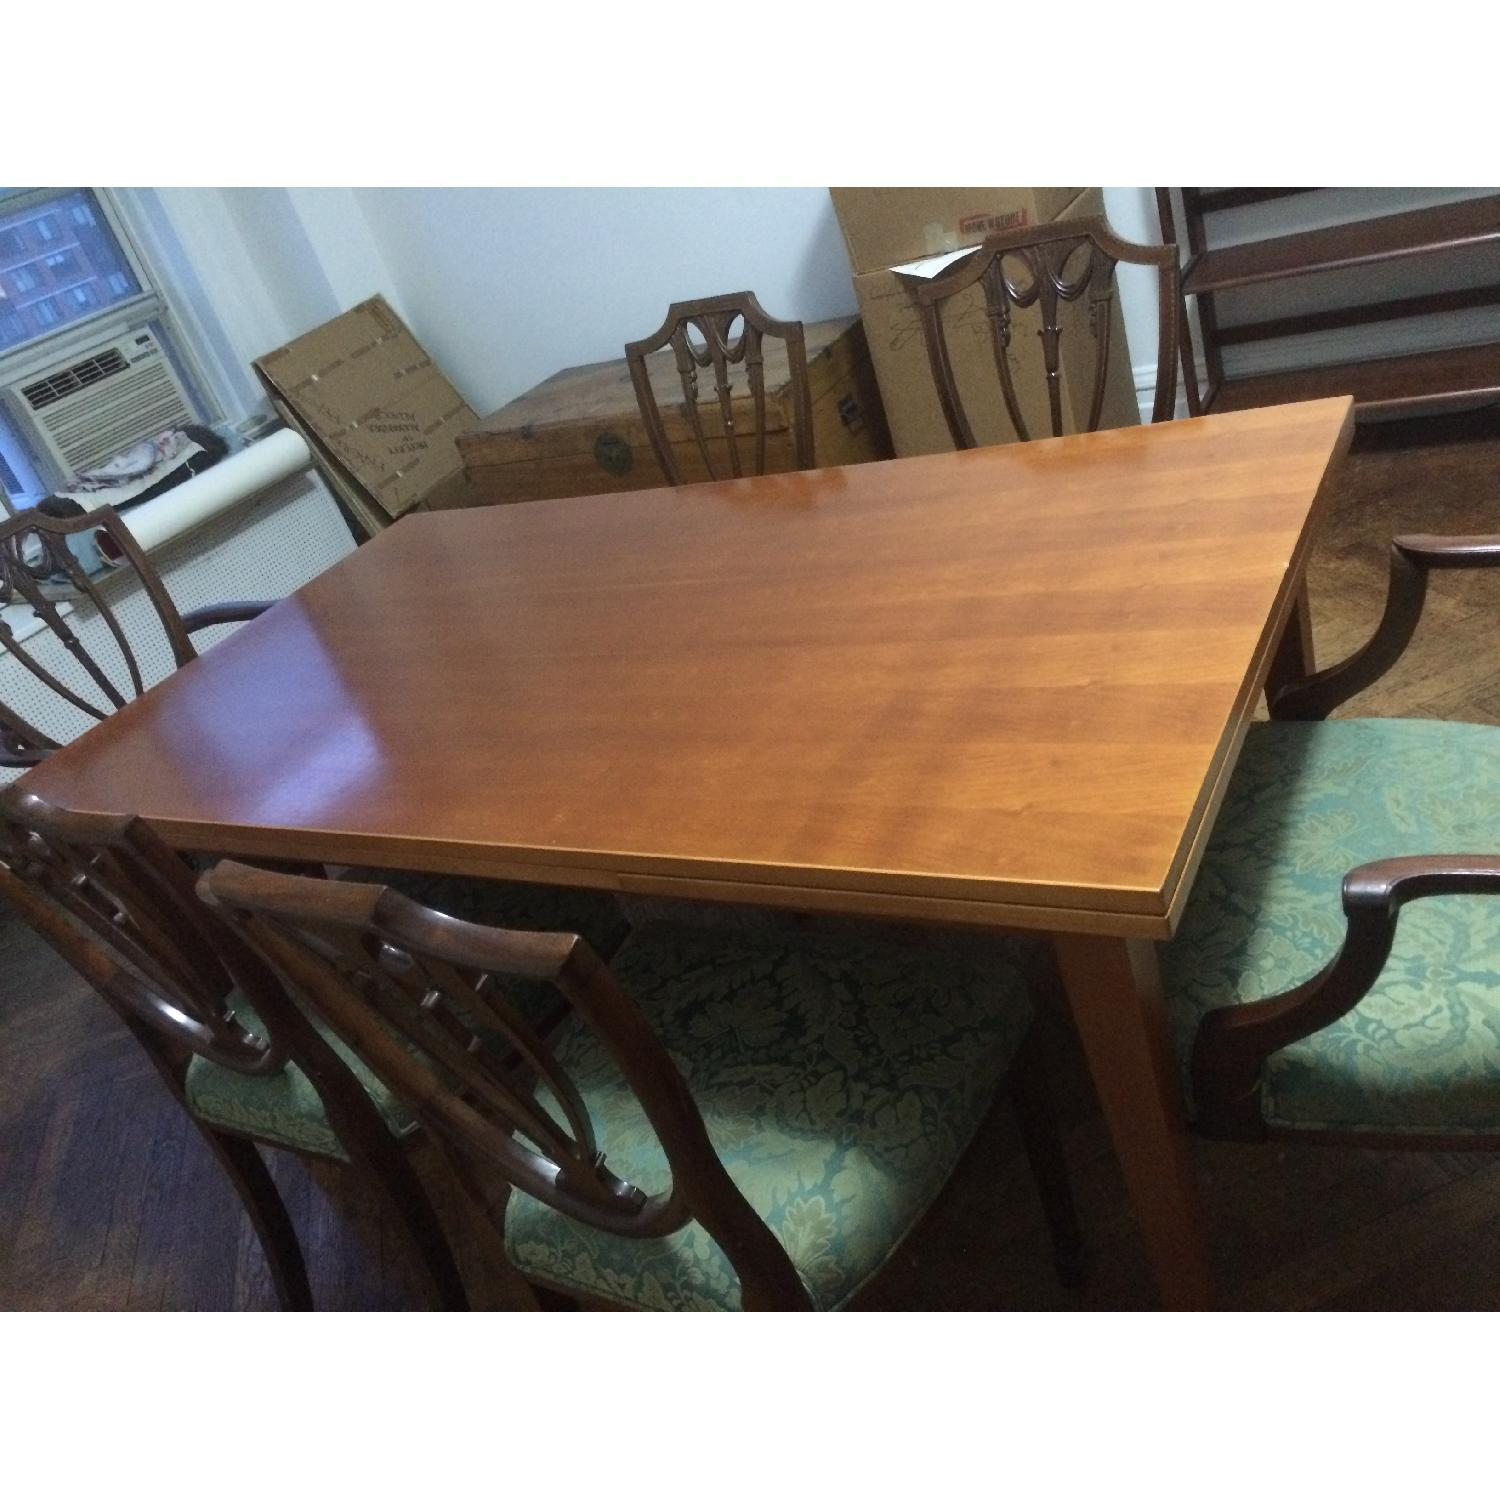 Fruit Wood Draw-Leaf Extension Table - image-9